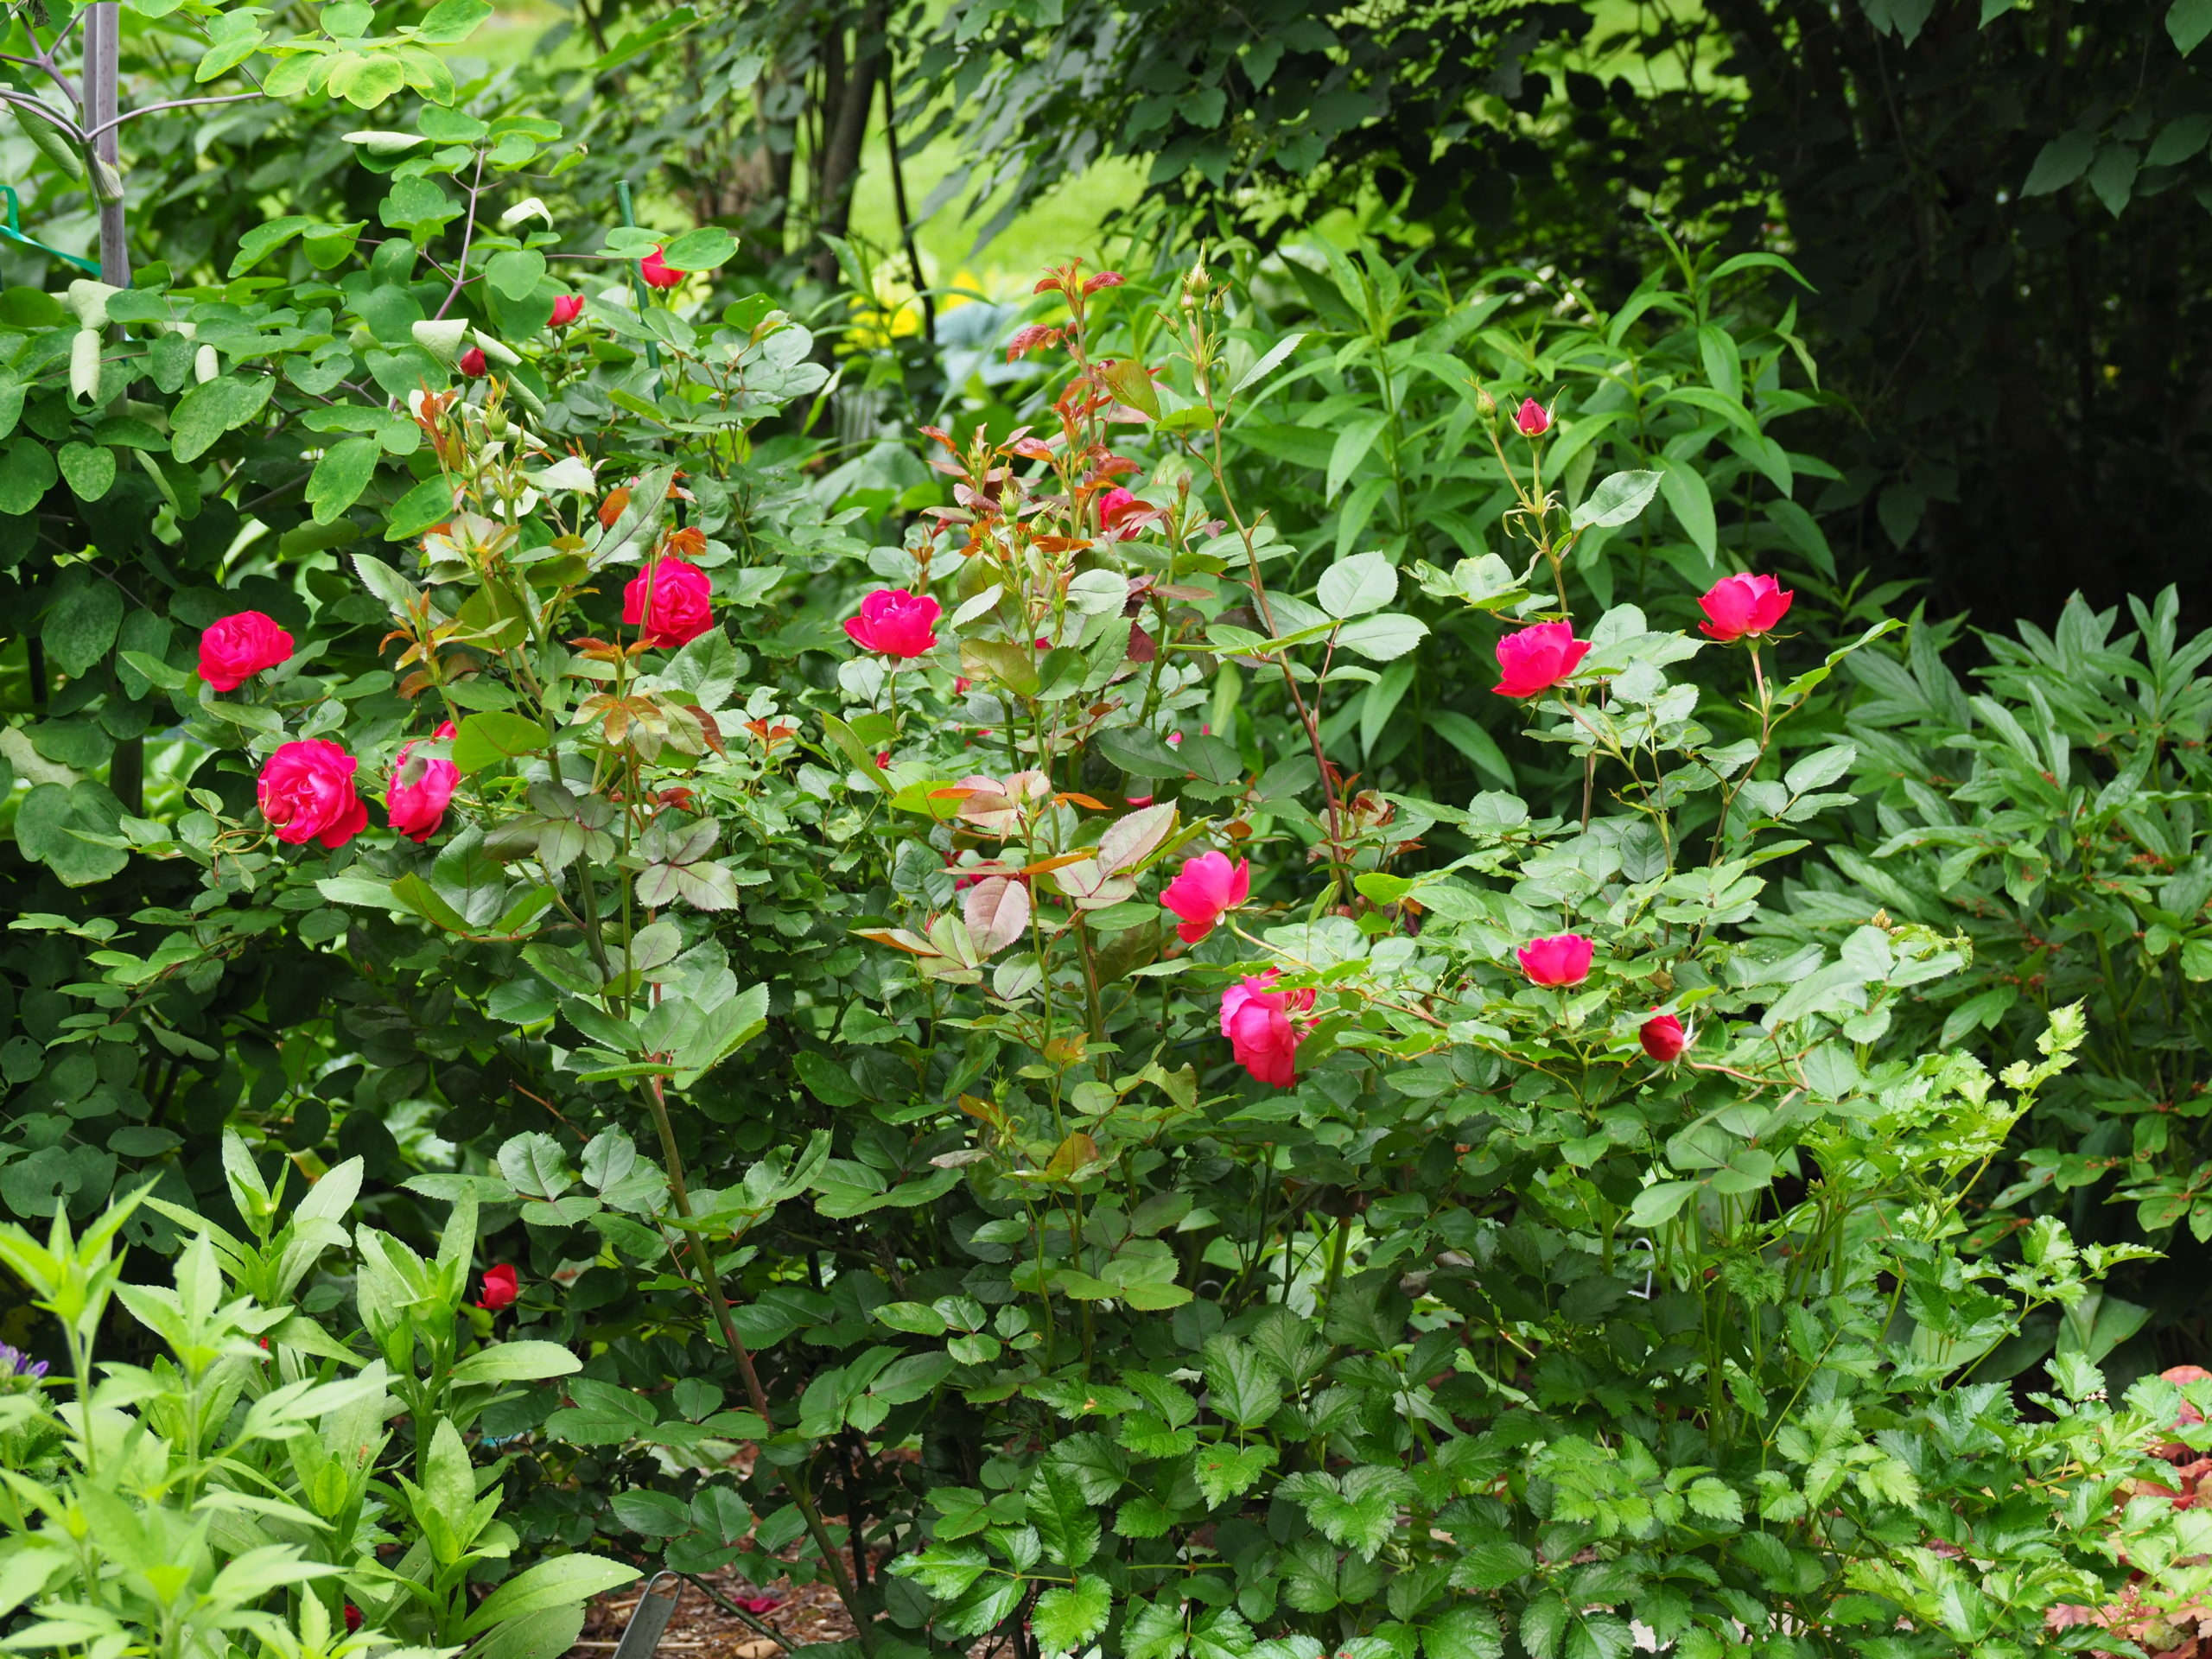 """Rose """"Oso Easy Double Red"""" has been a great performer blooming all summer long on a plant that needs little care other than spring pruning and feeding. The flowers glow late in the day."""